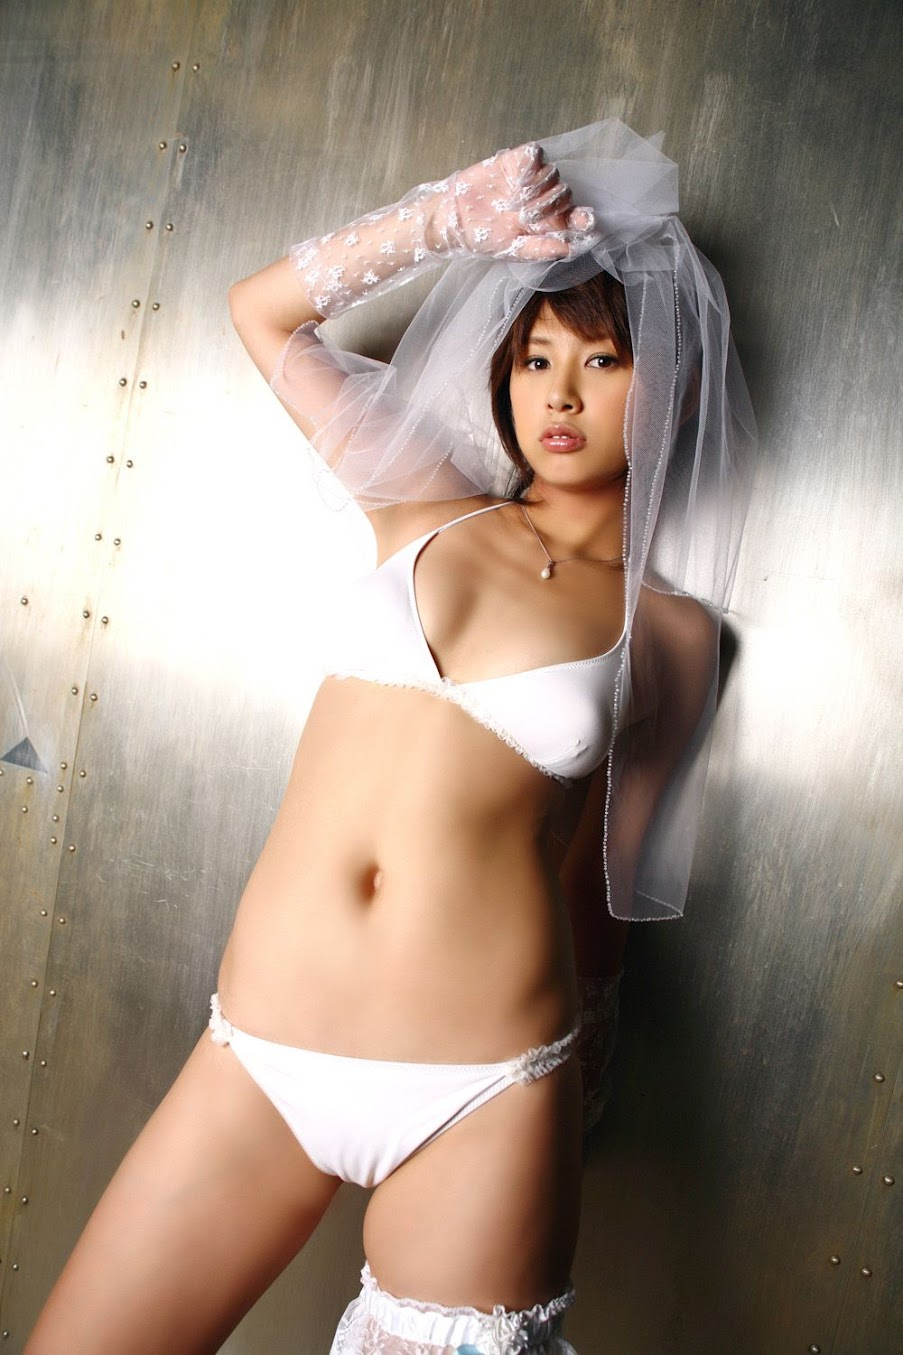 Yuka Kosaka - Japanese gravure idol, actress and model